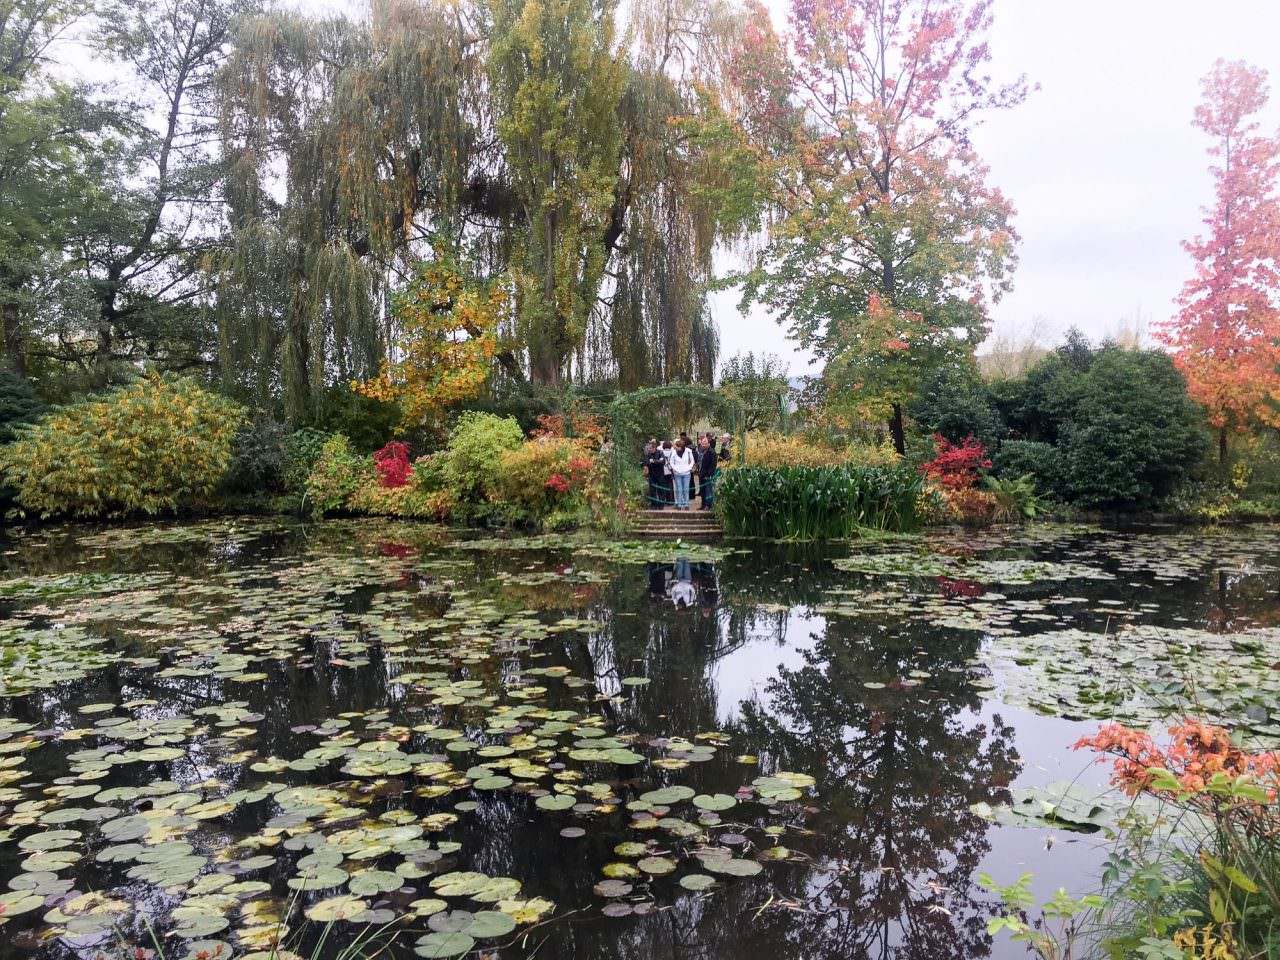 At Monet's Gardens. ©2016 Ralph Grizzle